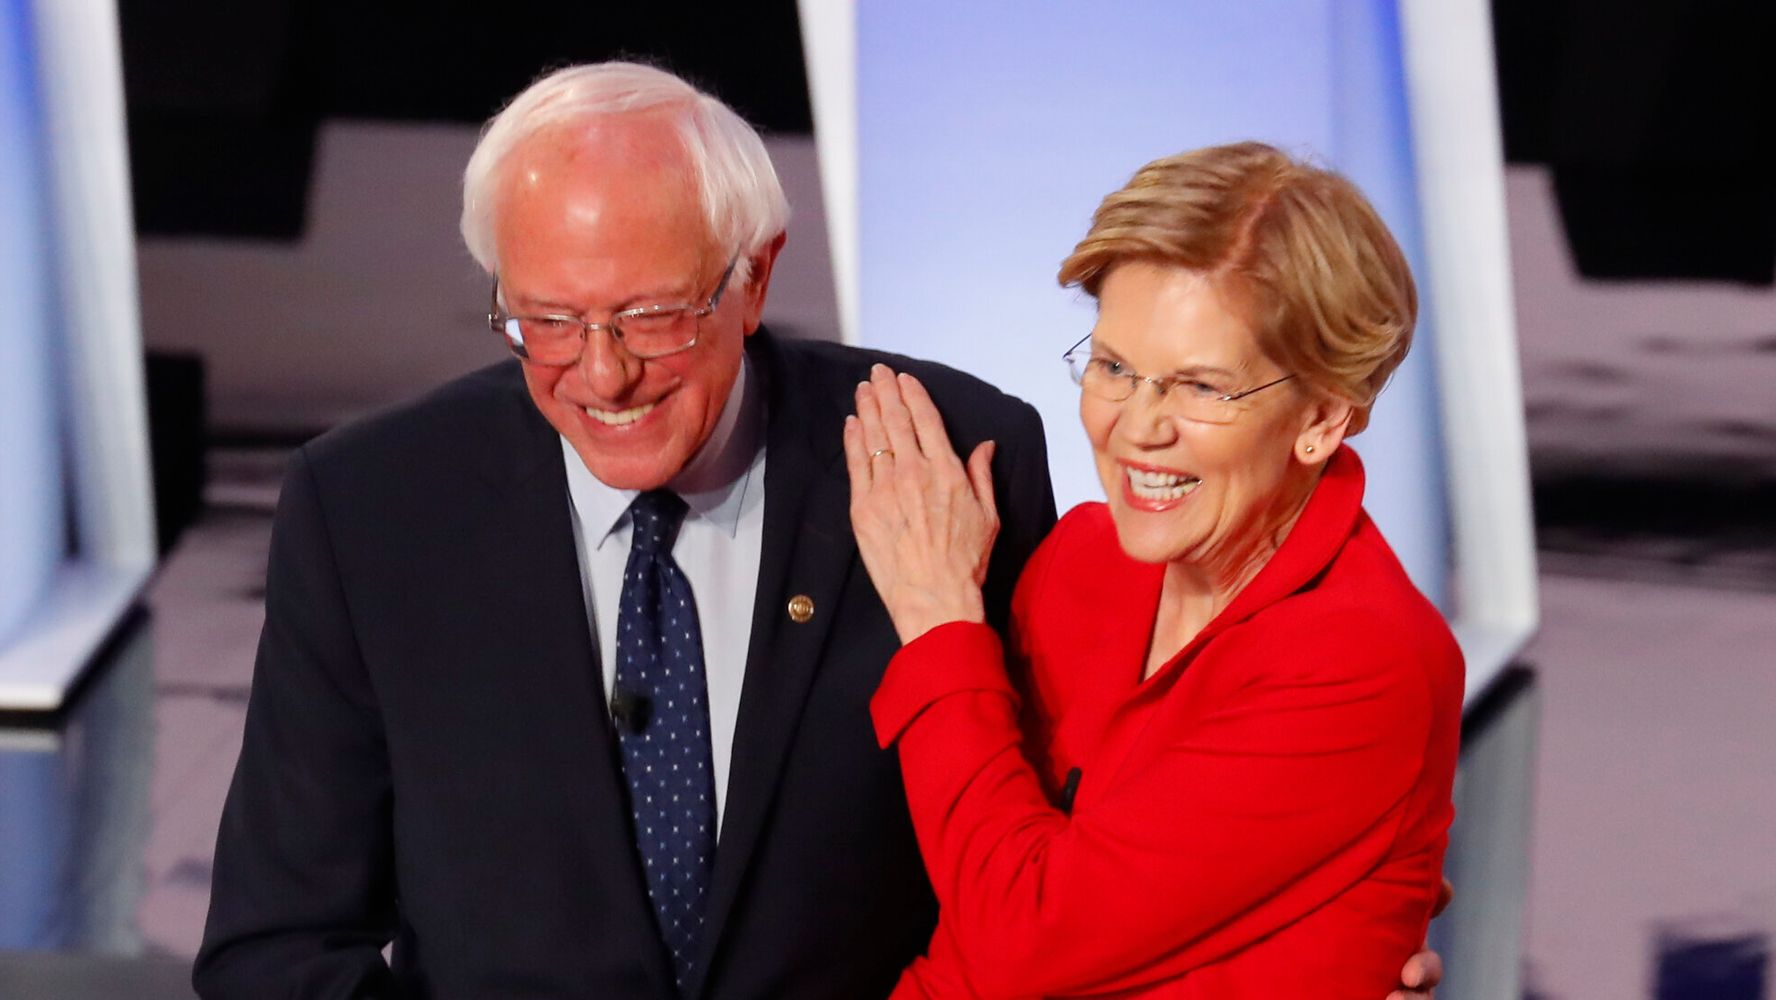 Westlake Legal Group 5e1b6c772100005a003dee82 Warren Fires Back At Sanders Campaign Criticism: 'I Hope Bernie Reconsiders'